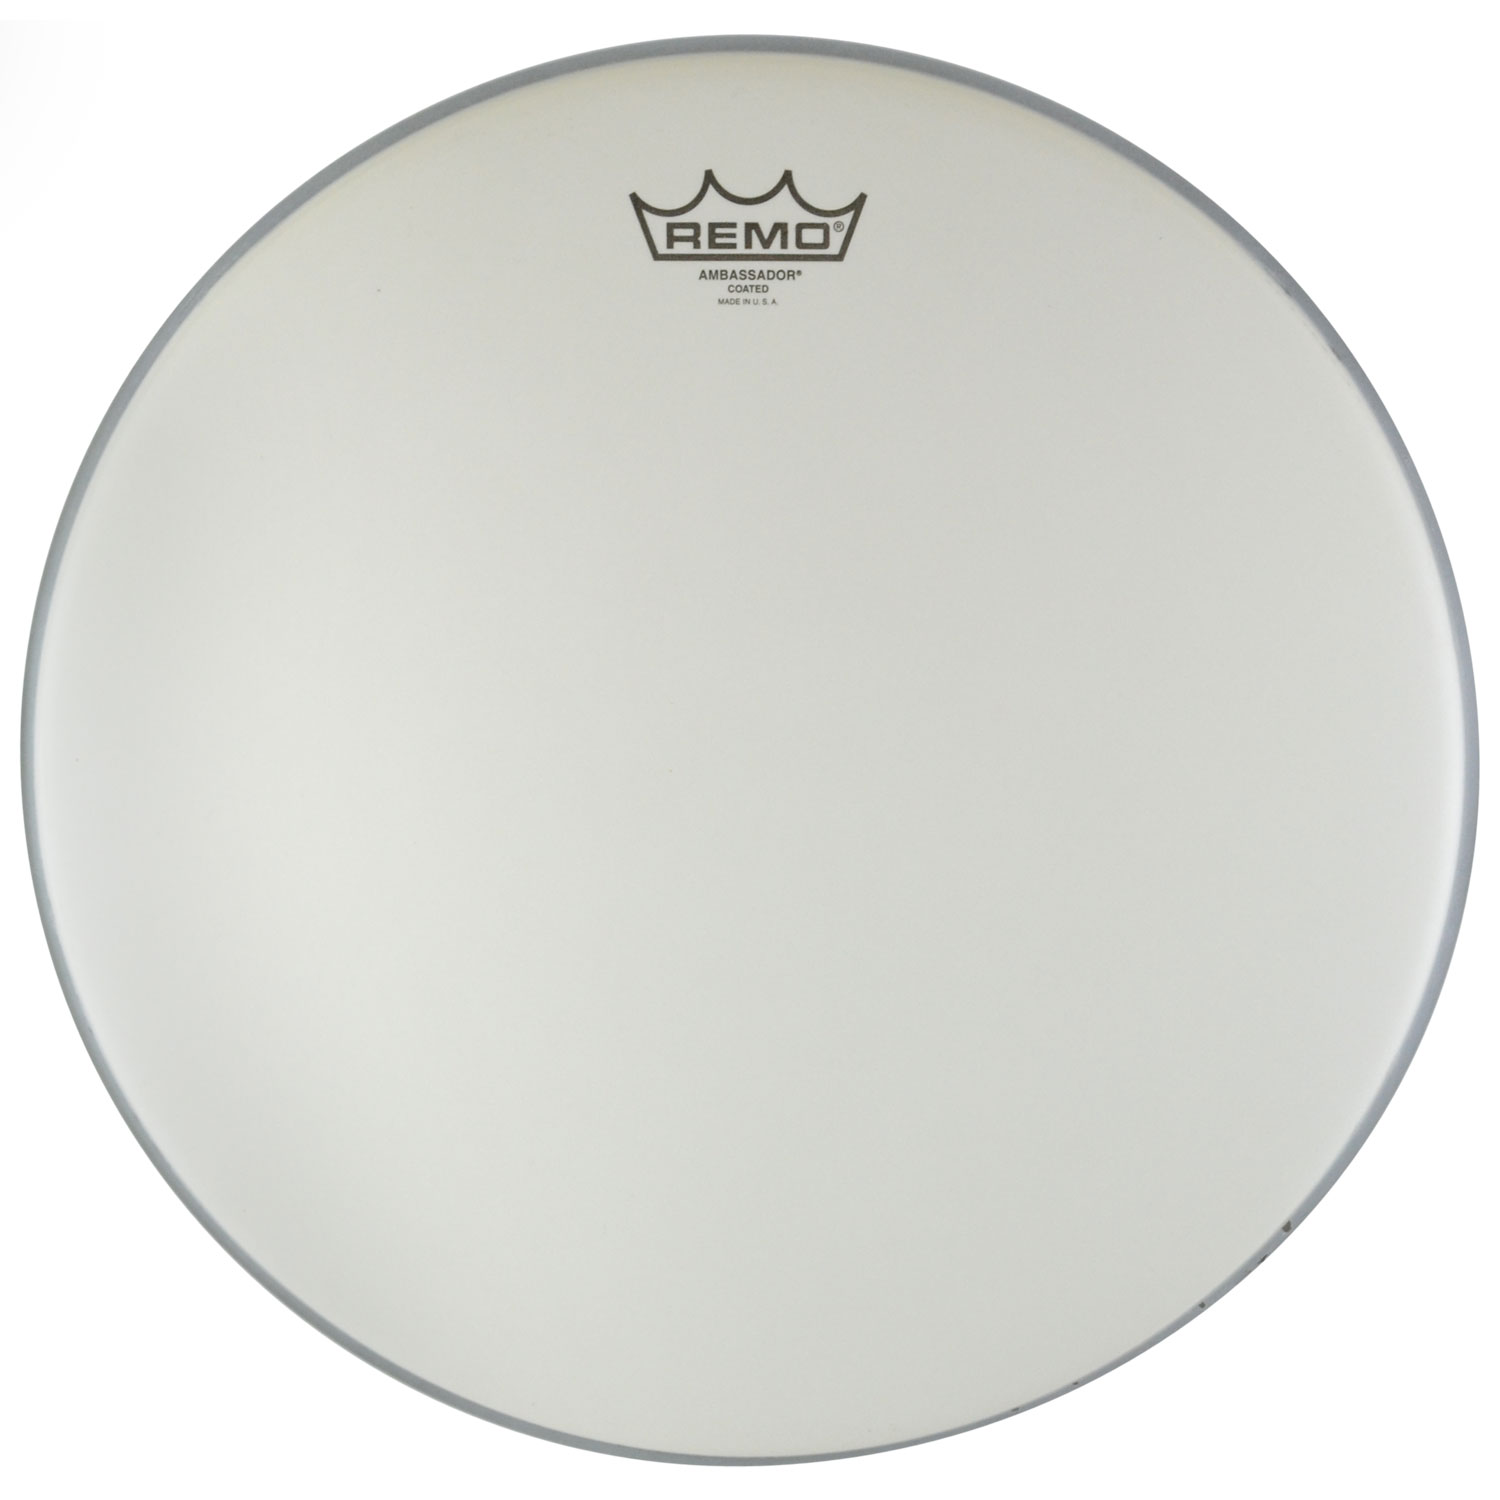 "Remo 16"" Ambassador Coated Drum Head"